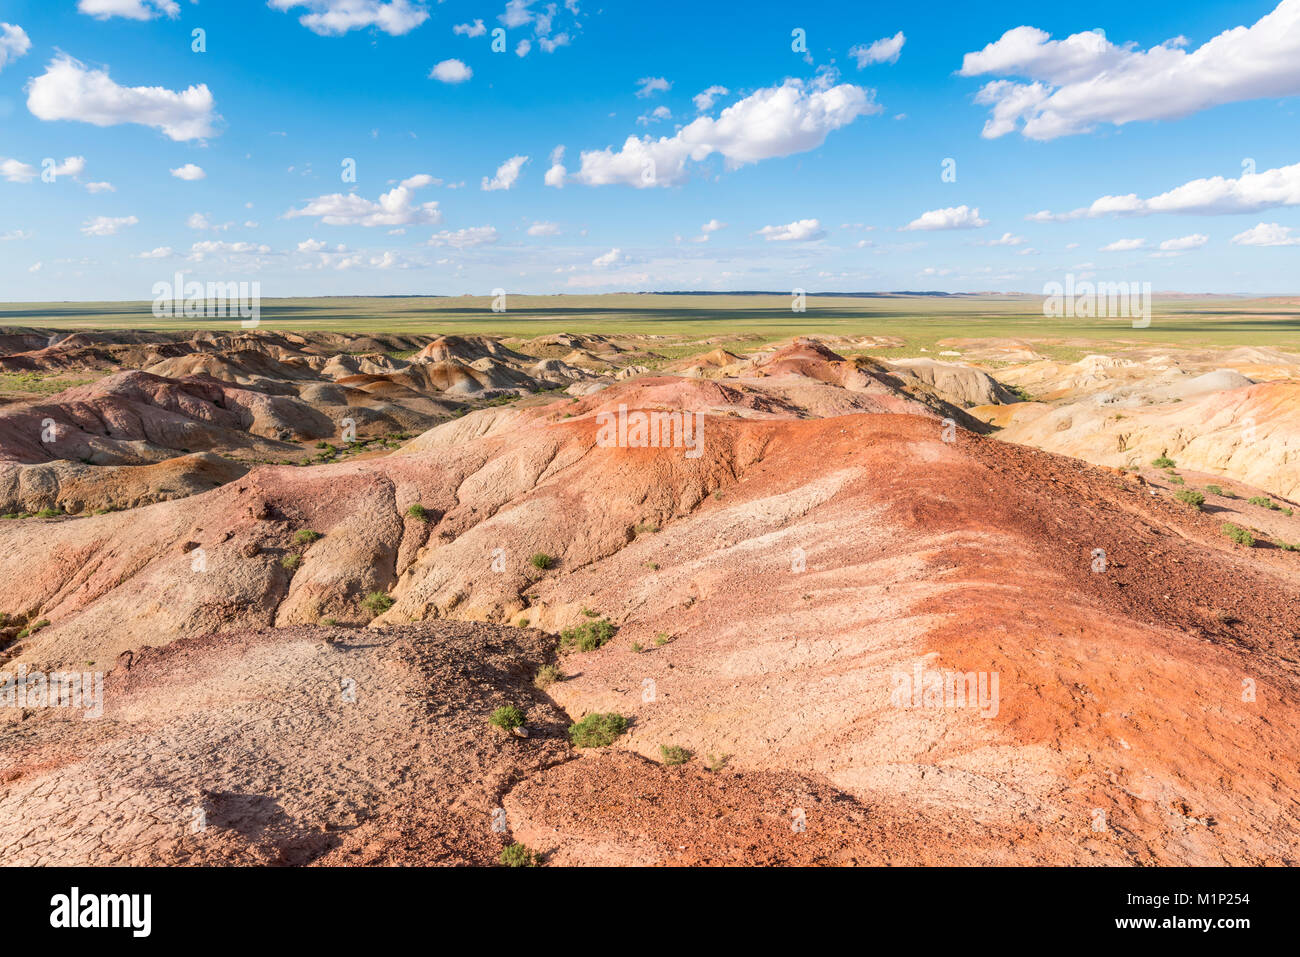 White Stupa sedimentary rock formations, Ulziit, Middle Gobi province, Mongolia, Central Asia, Asia - Stock Image